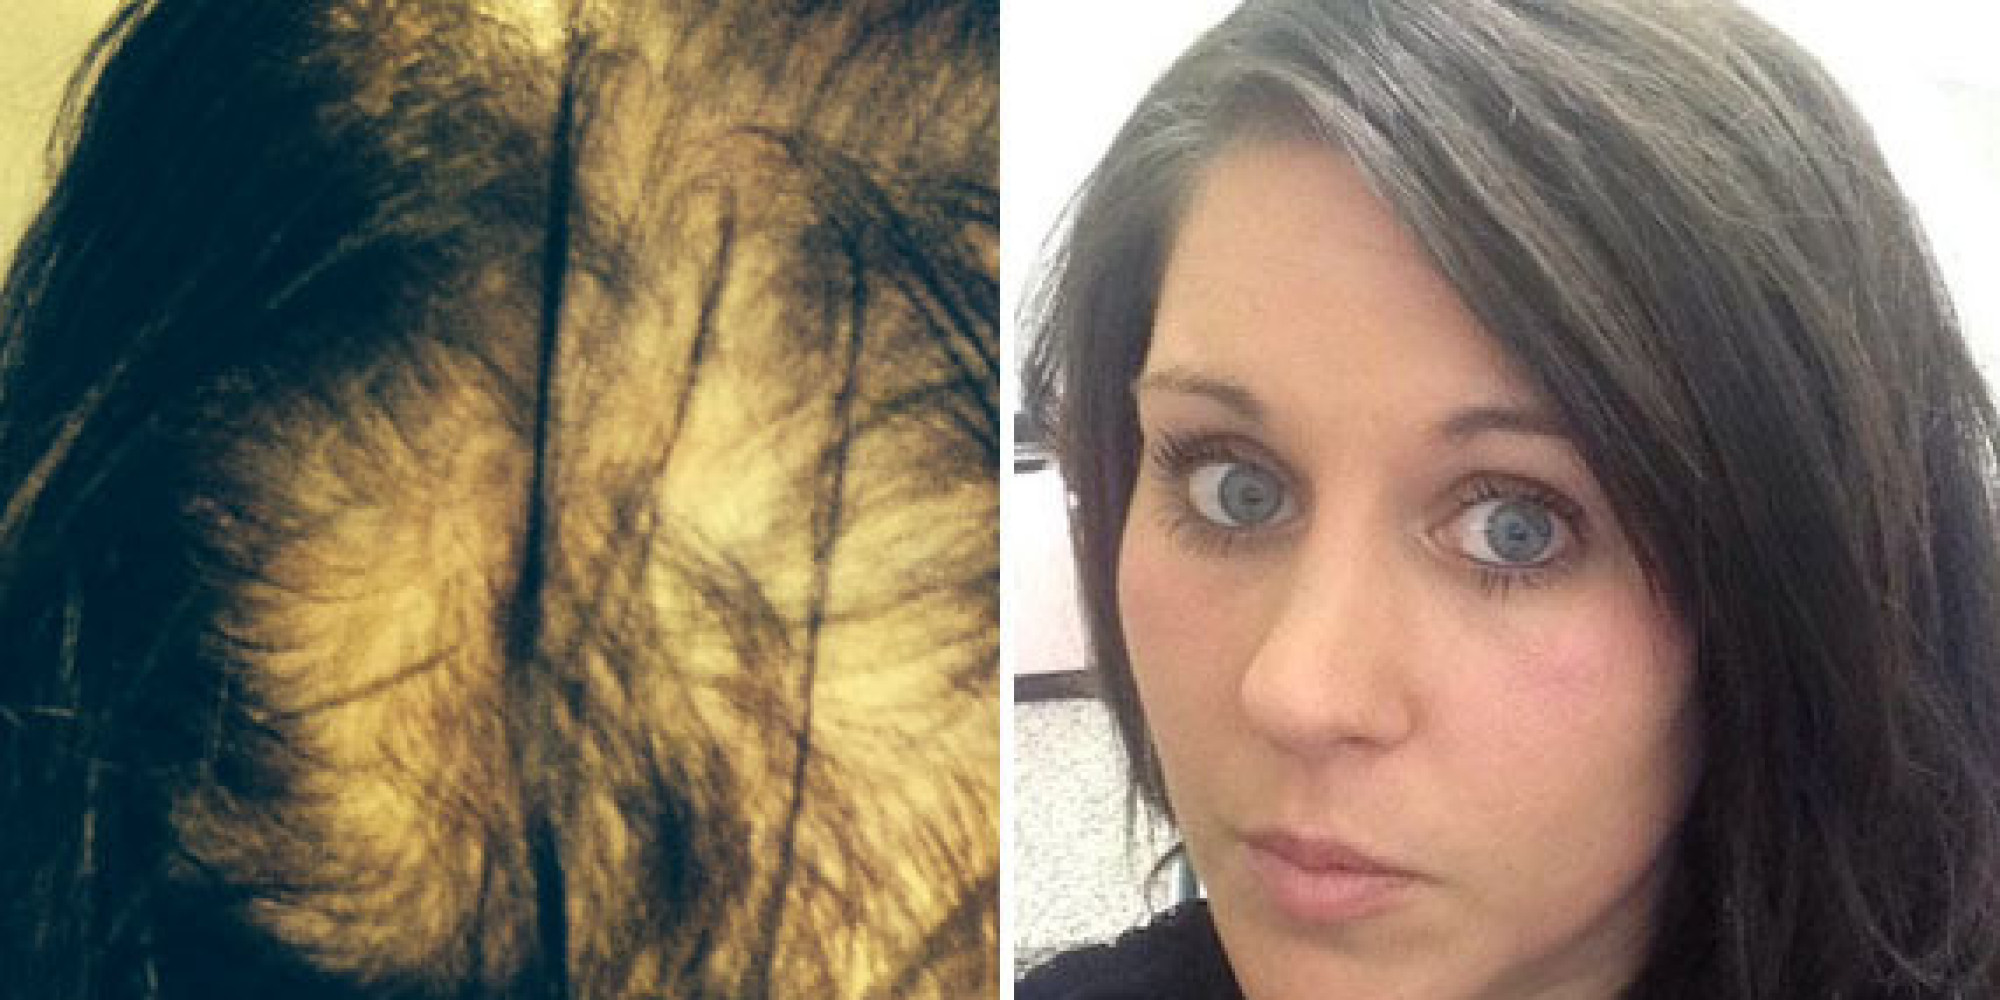 Woman Who Suffered Severe Hair Loss Undergoes ...